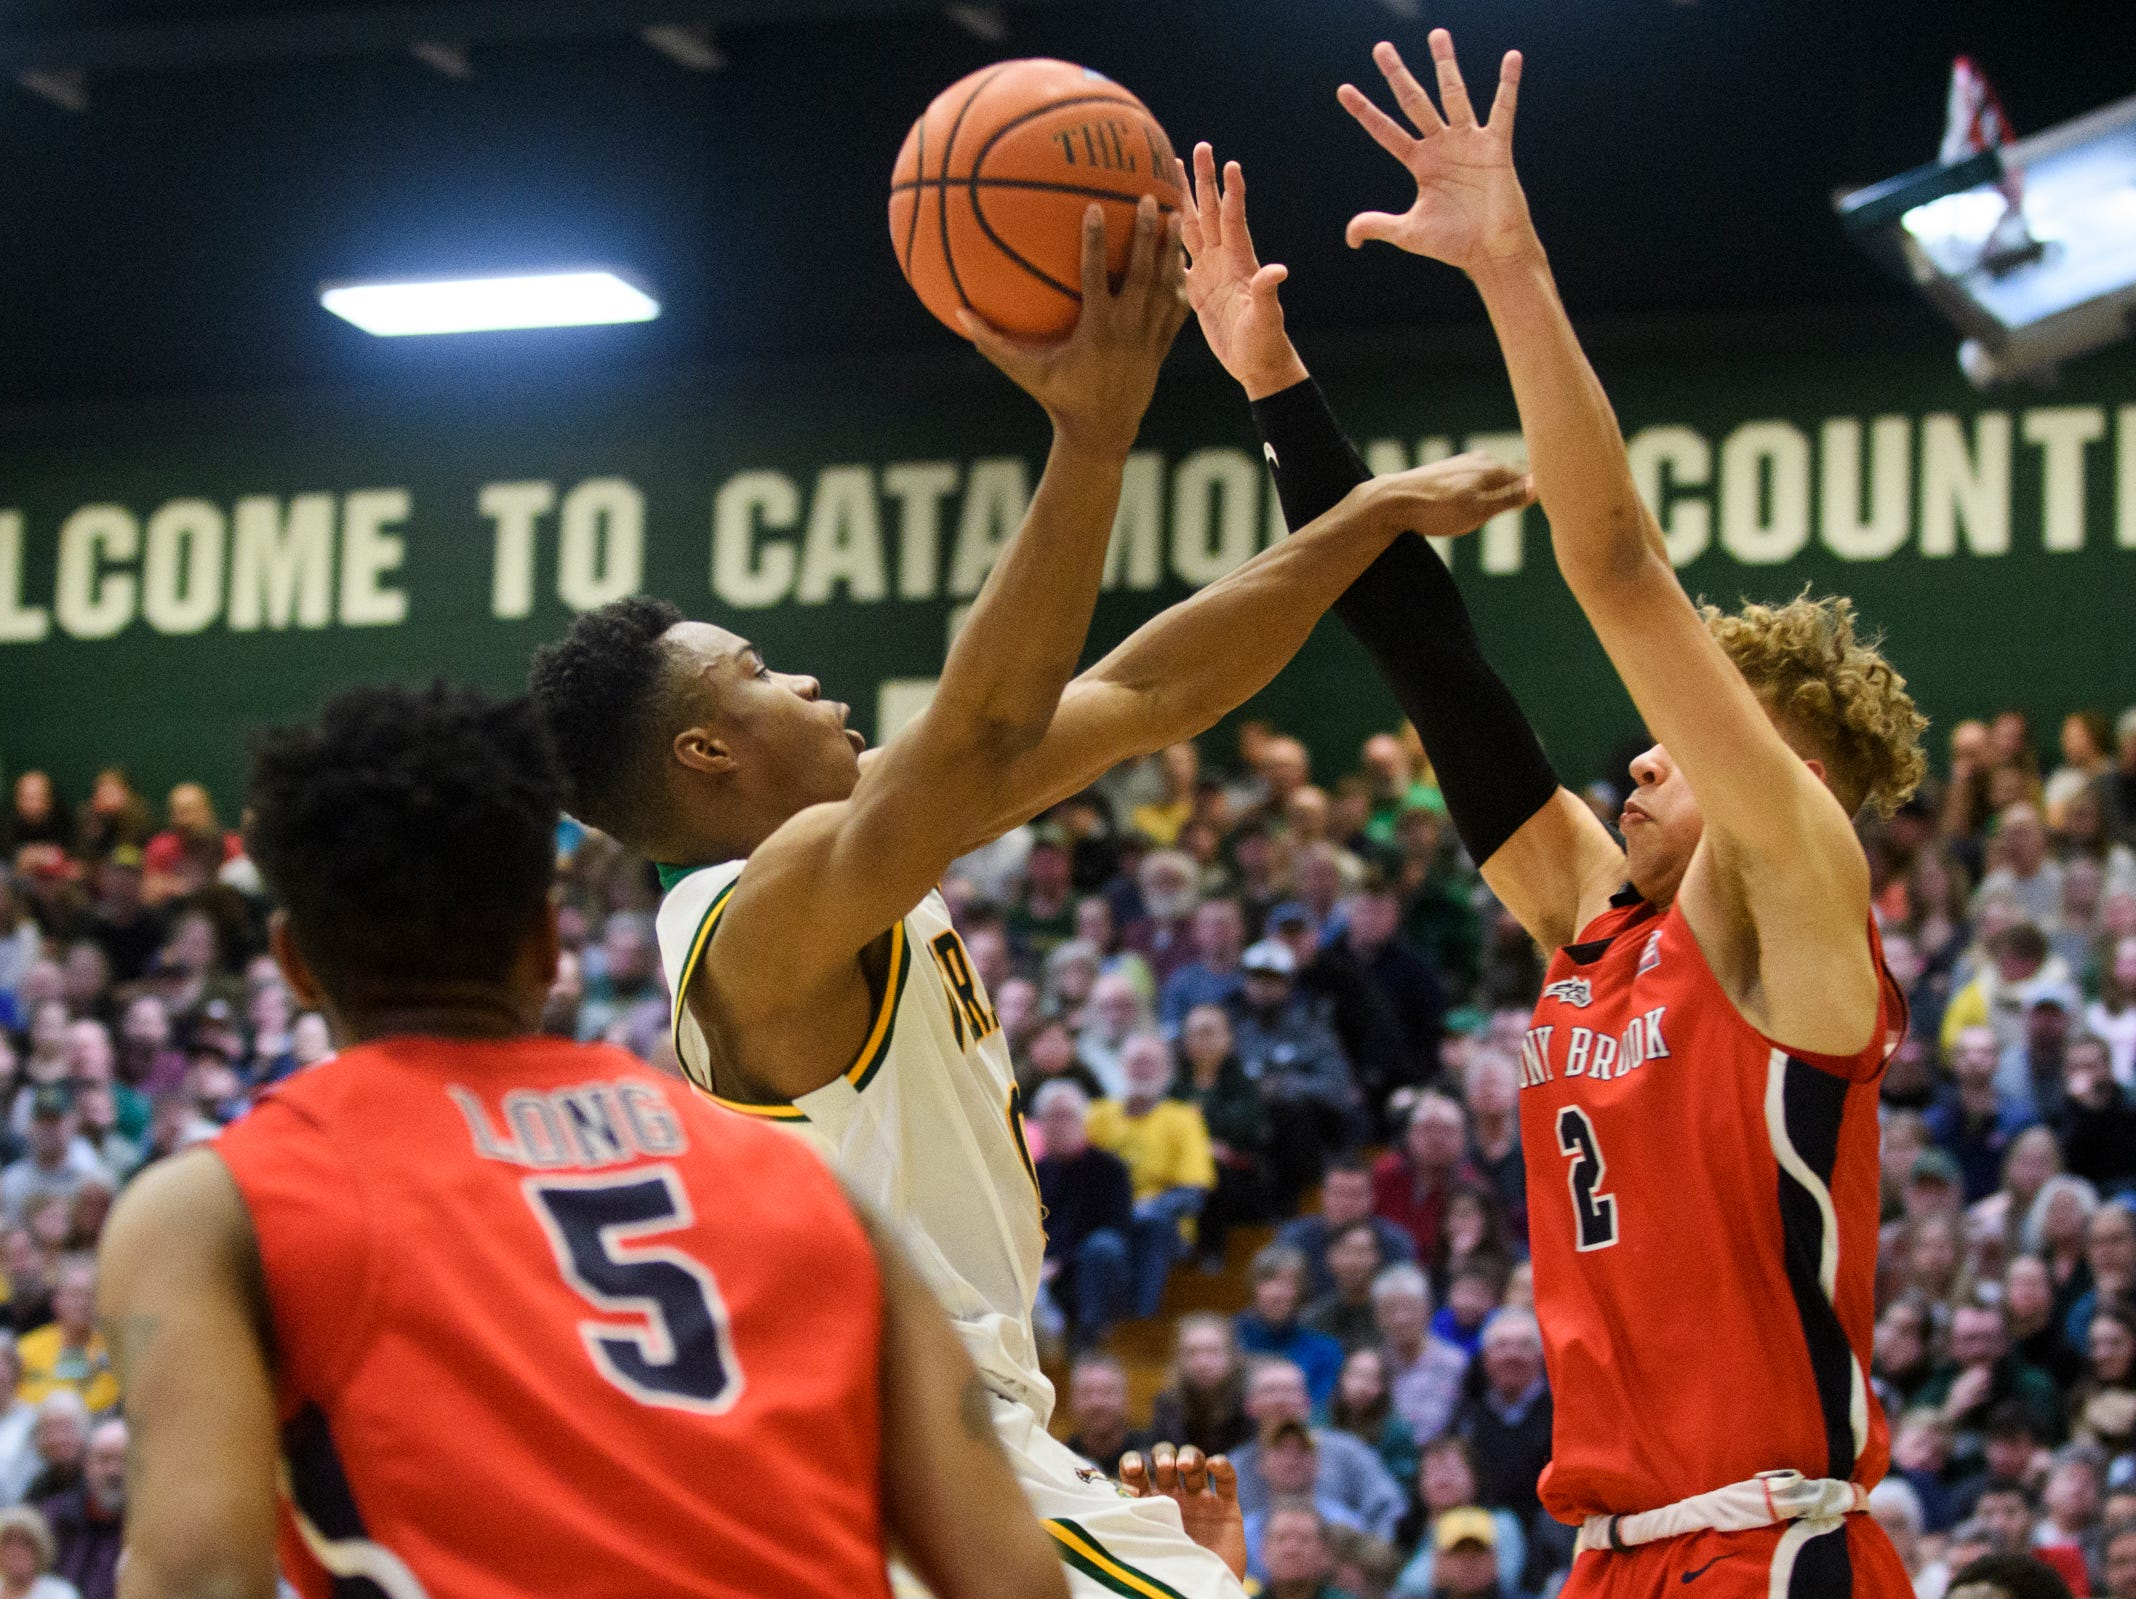 Vermont guard Stef Smith (0) leaps for a basket over Stony Brook's Miles Latimer (2) during the men's basketball game between the Stony Brook Seawolves and the Vermont Catamounts at Patrick Gym on Saturday night March 2, 2019 in Burlington, Vermont.